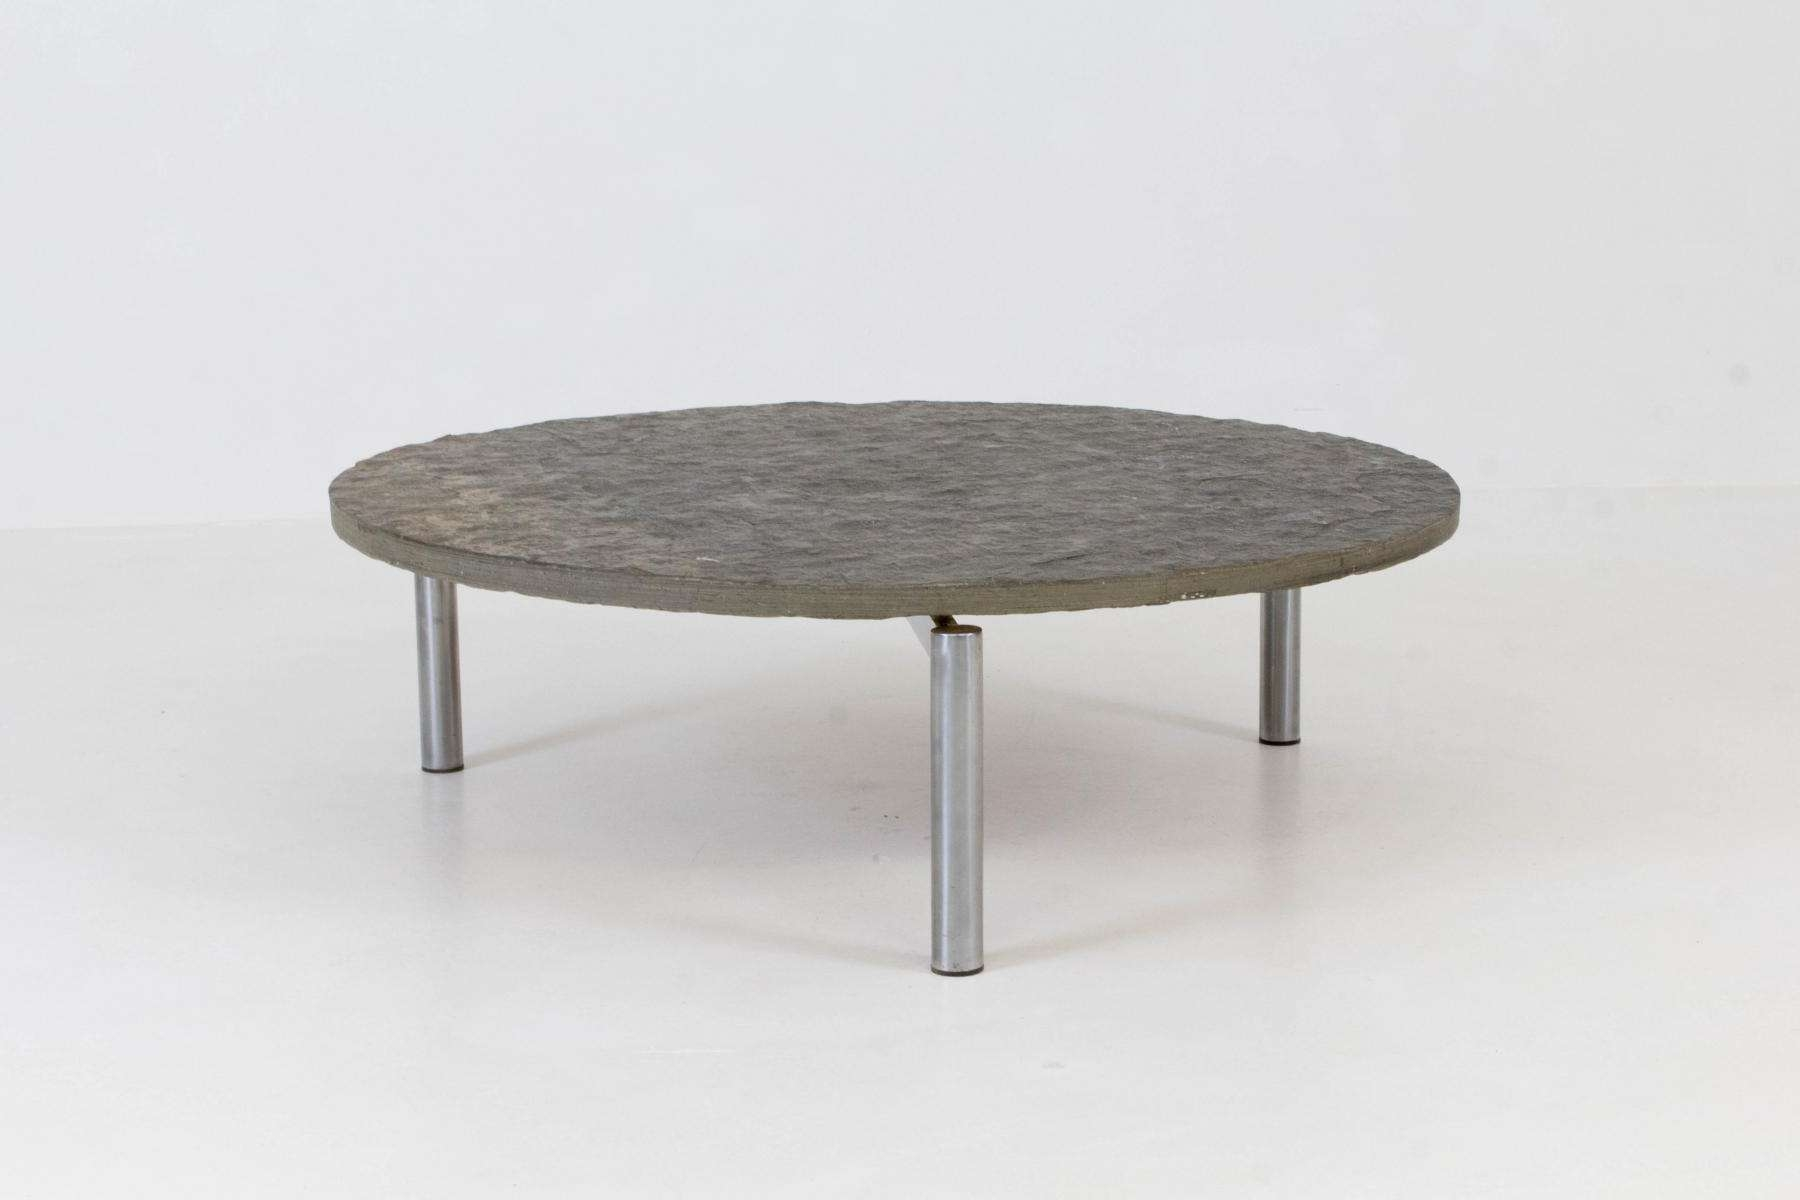 Coffee Table Amazing Slate Top Coffee Table Designs Hd Wallpaper Within Widely Used Round Slate Top Coffee Tables (View 9 of 20)